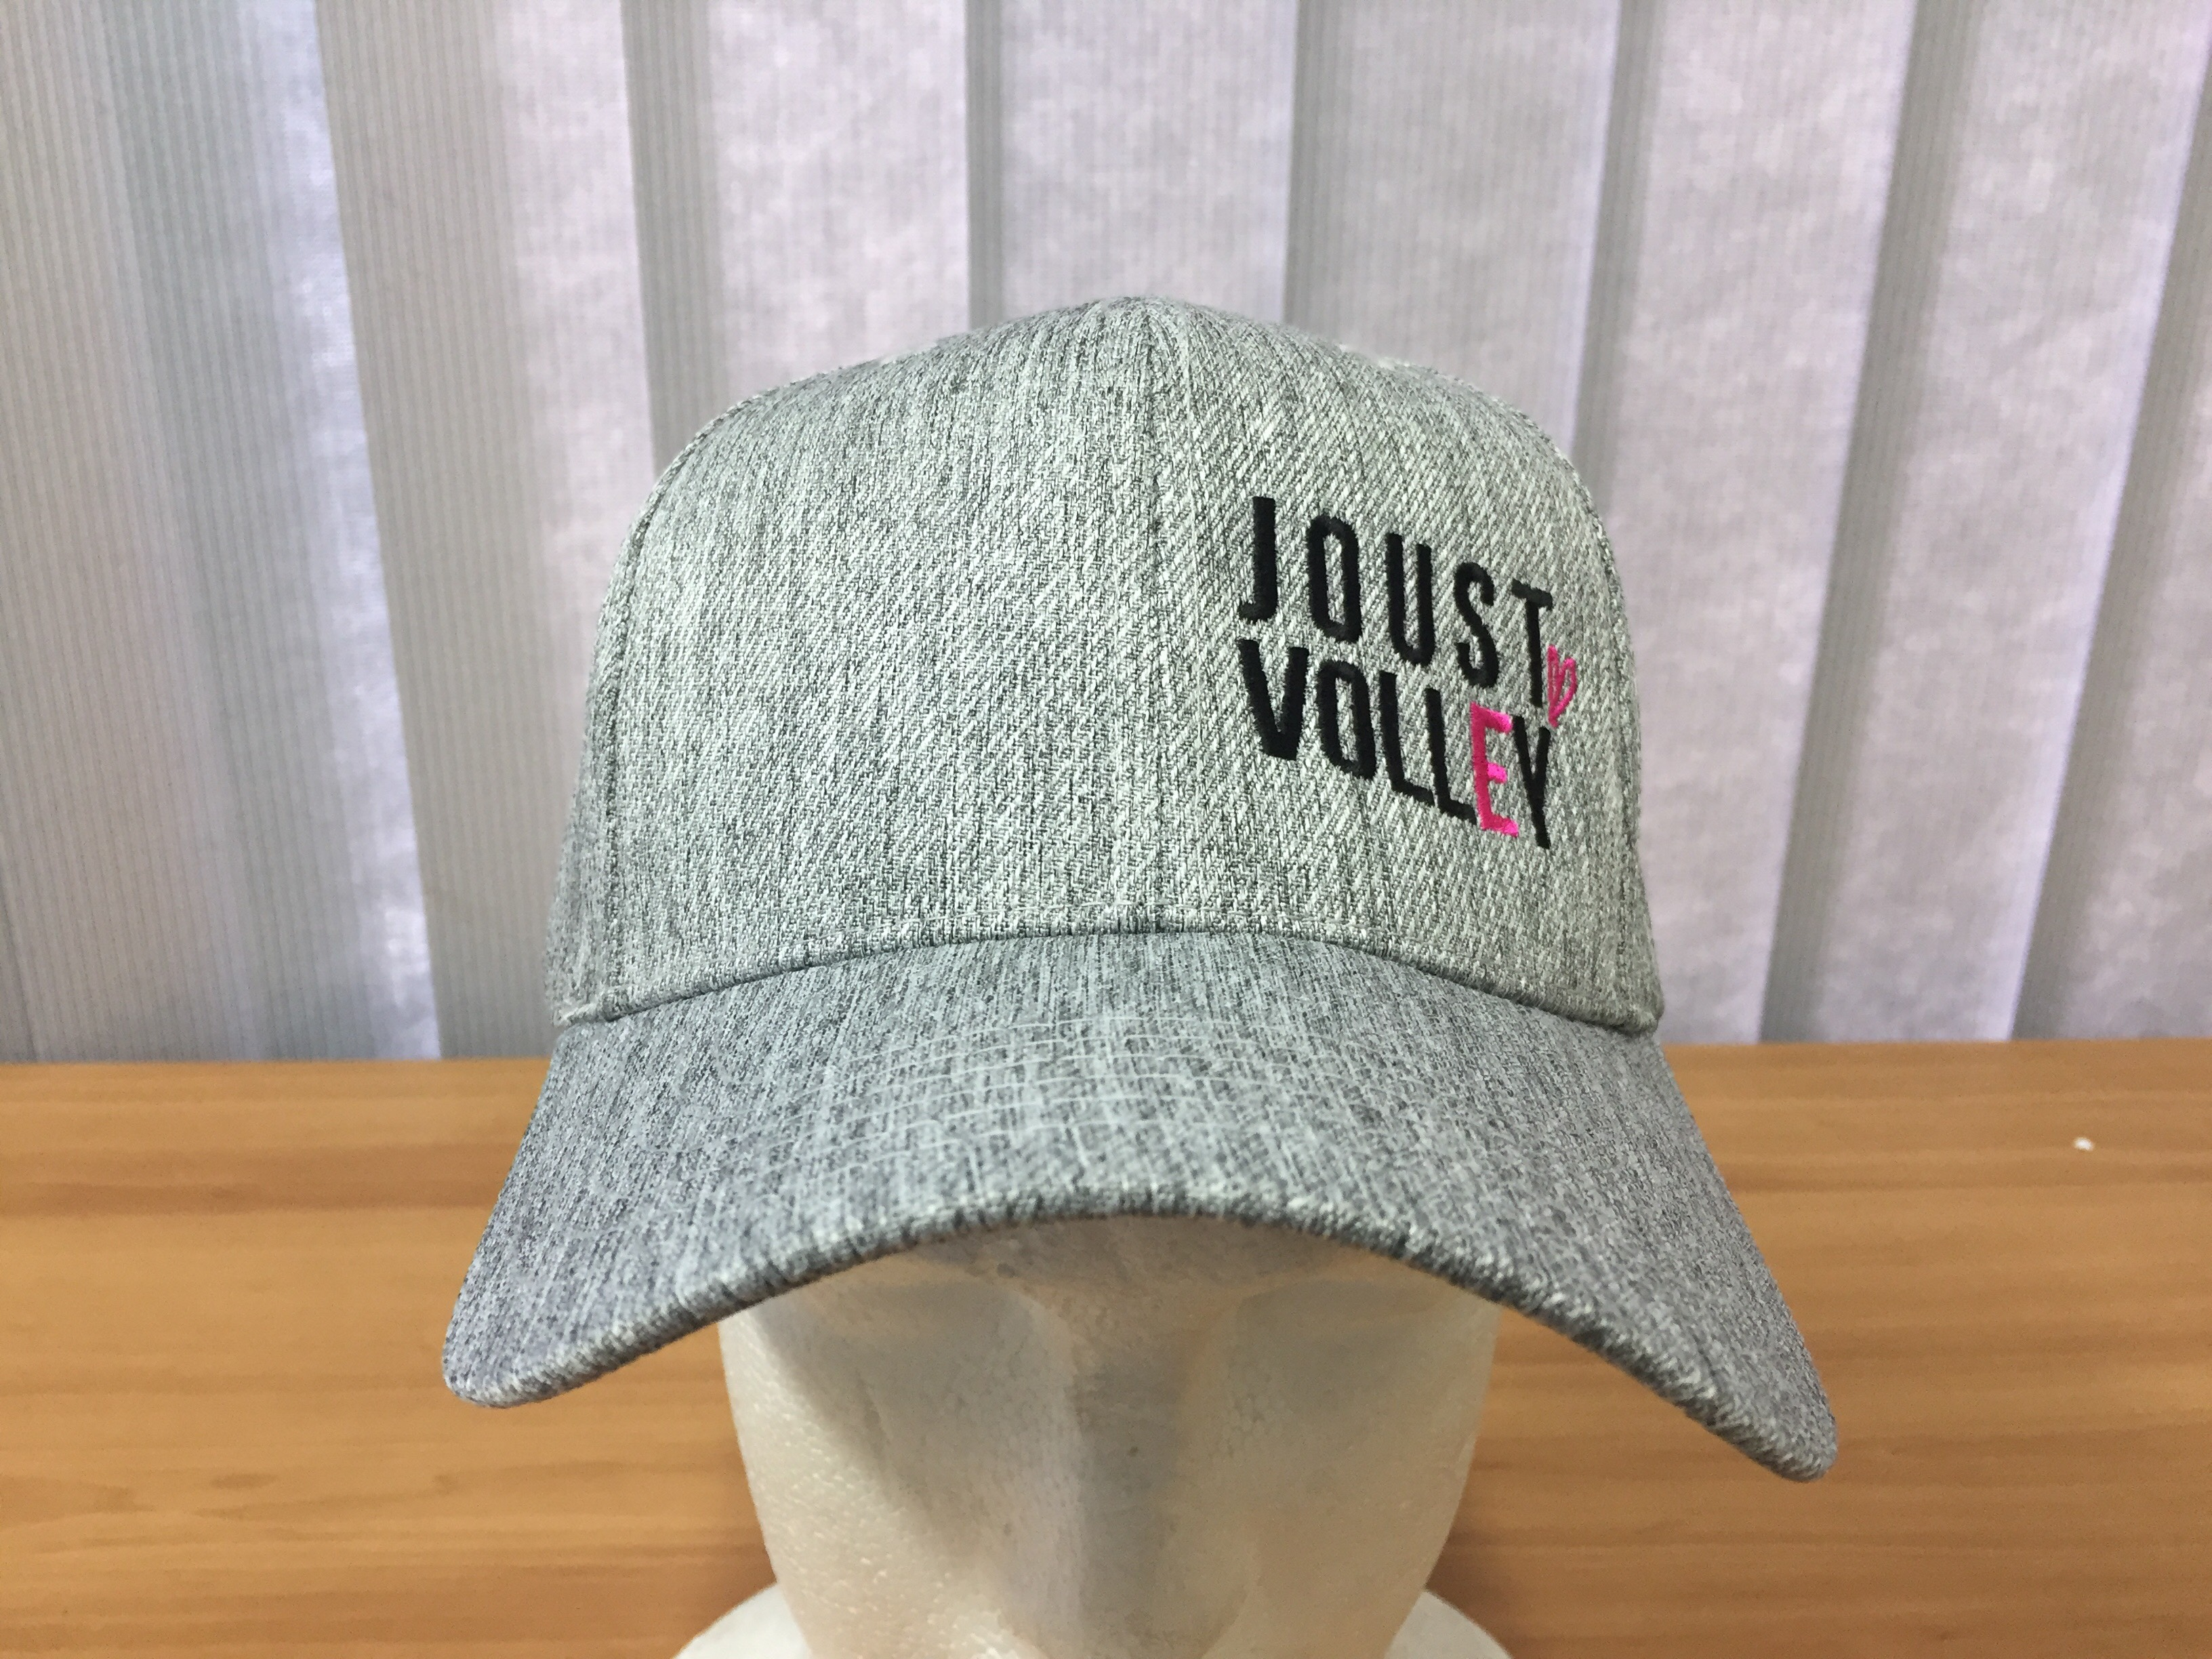 Joust Volley Hat - Love Heart - Light Grey